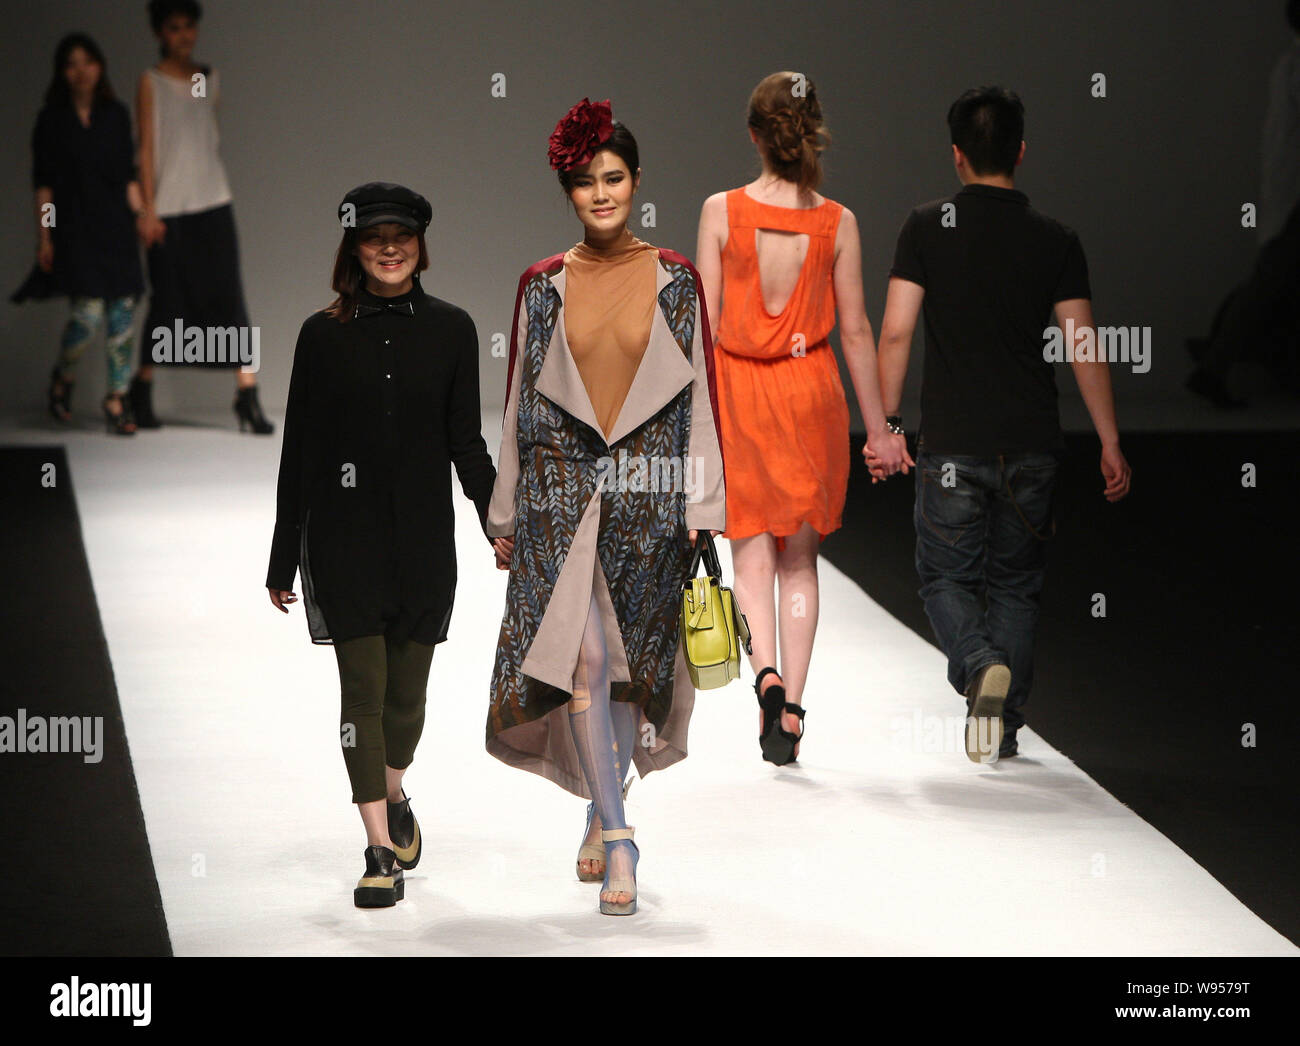 Models Display The New Creations By Students From Raffles Design Institute Of Donghua University At A Fashion Show During The Shanghai Fashion Week Au Stock Photo Alamy